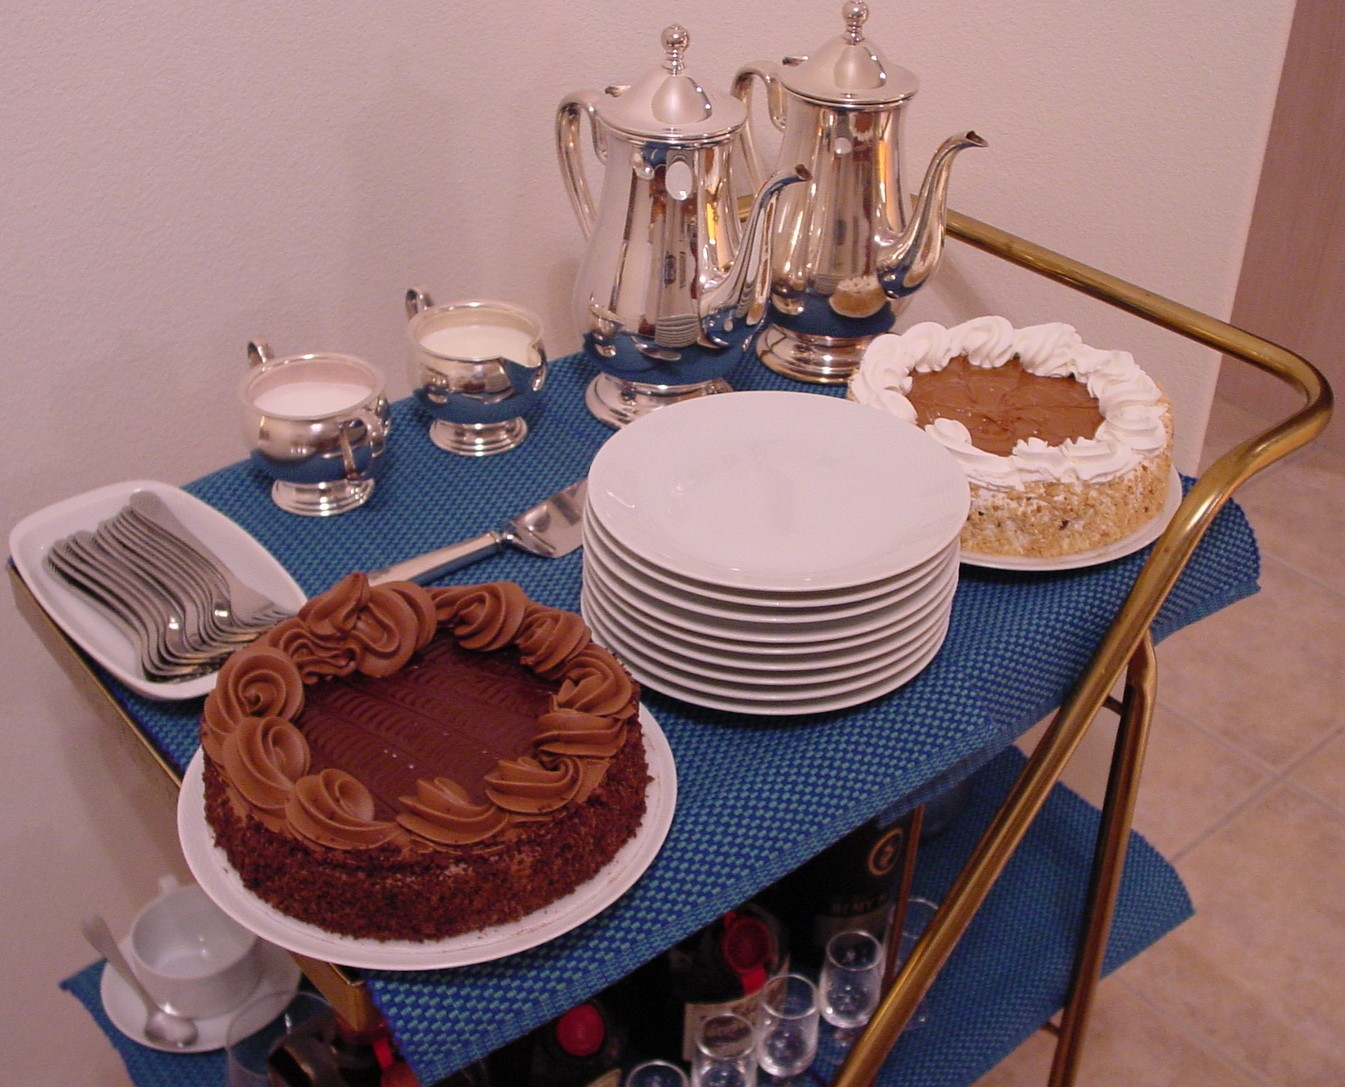 With enough guests two dessert choices may be offered and served on Pan Am's 1980s china & silver service.